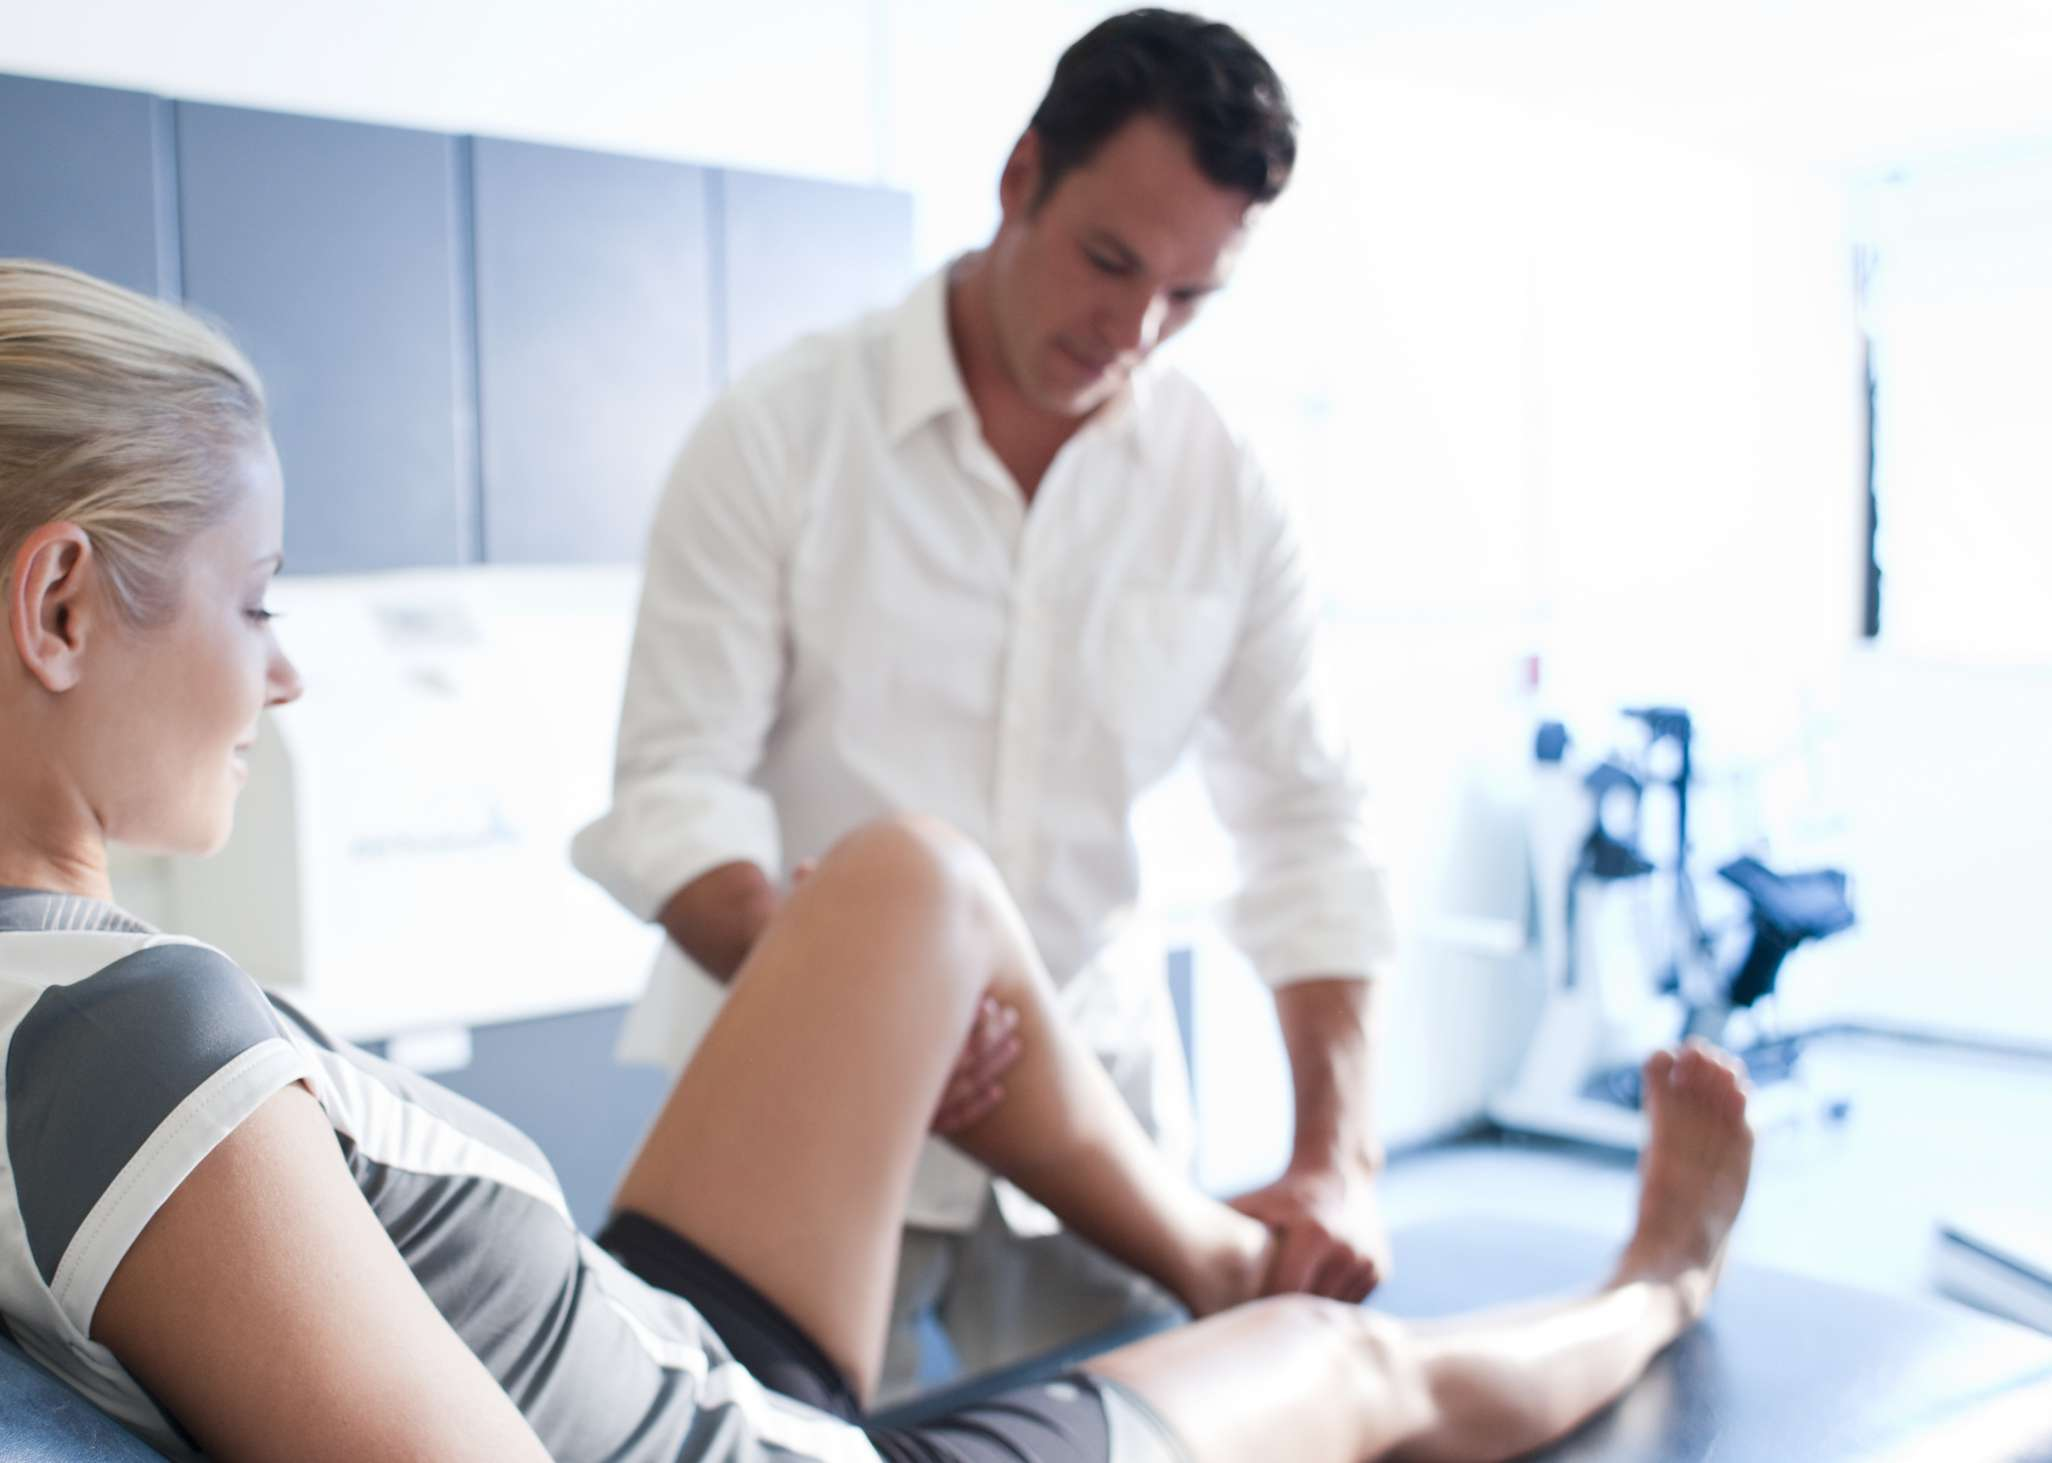 Physical therapist works on woman's lower leg